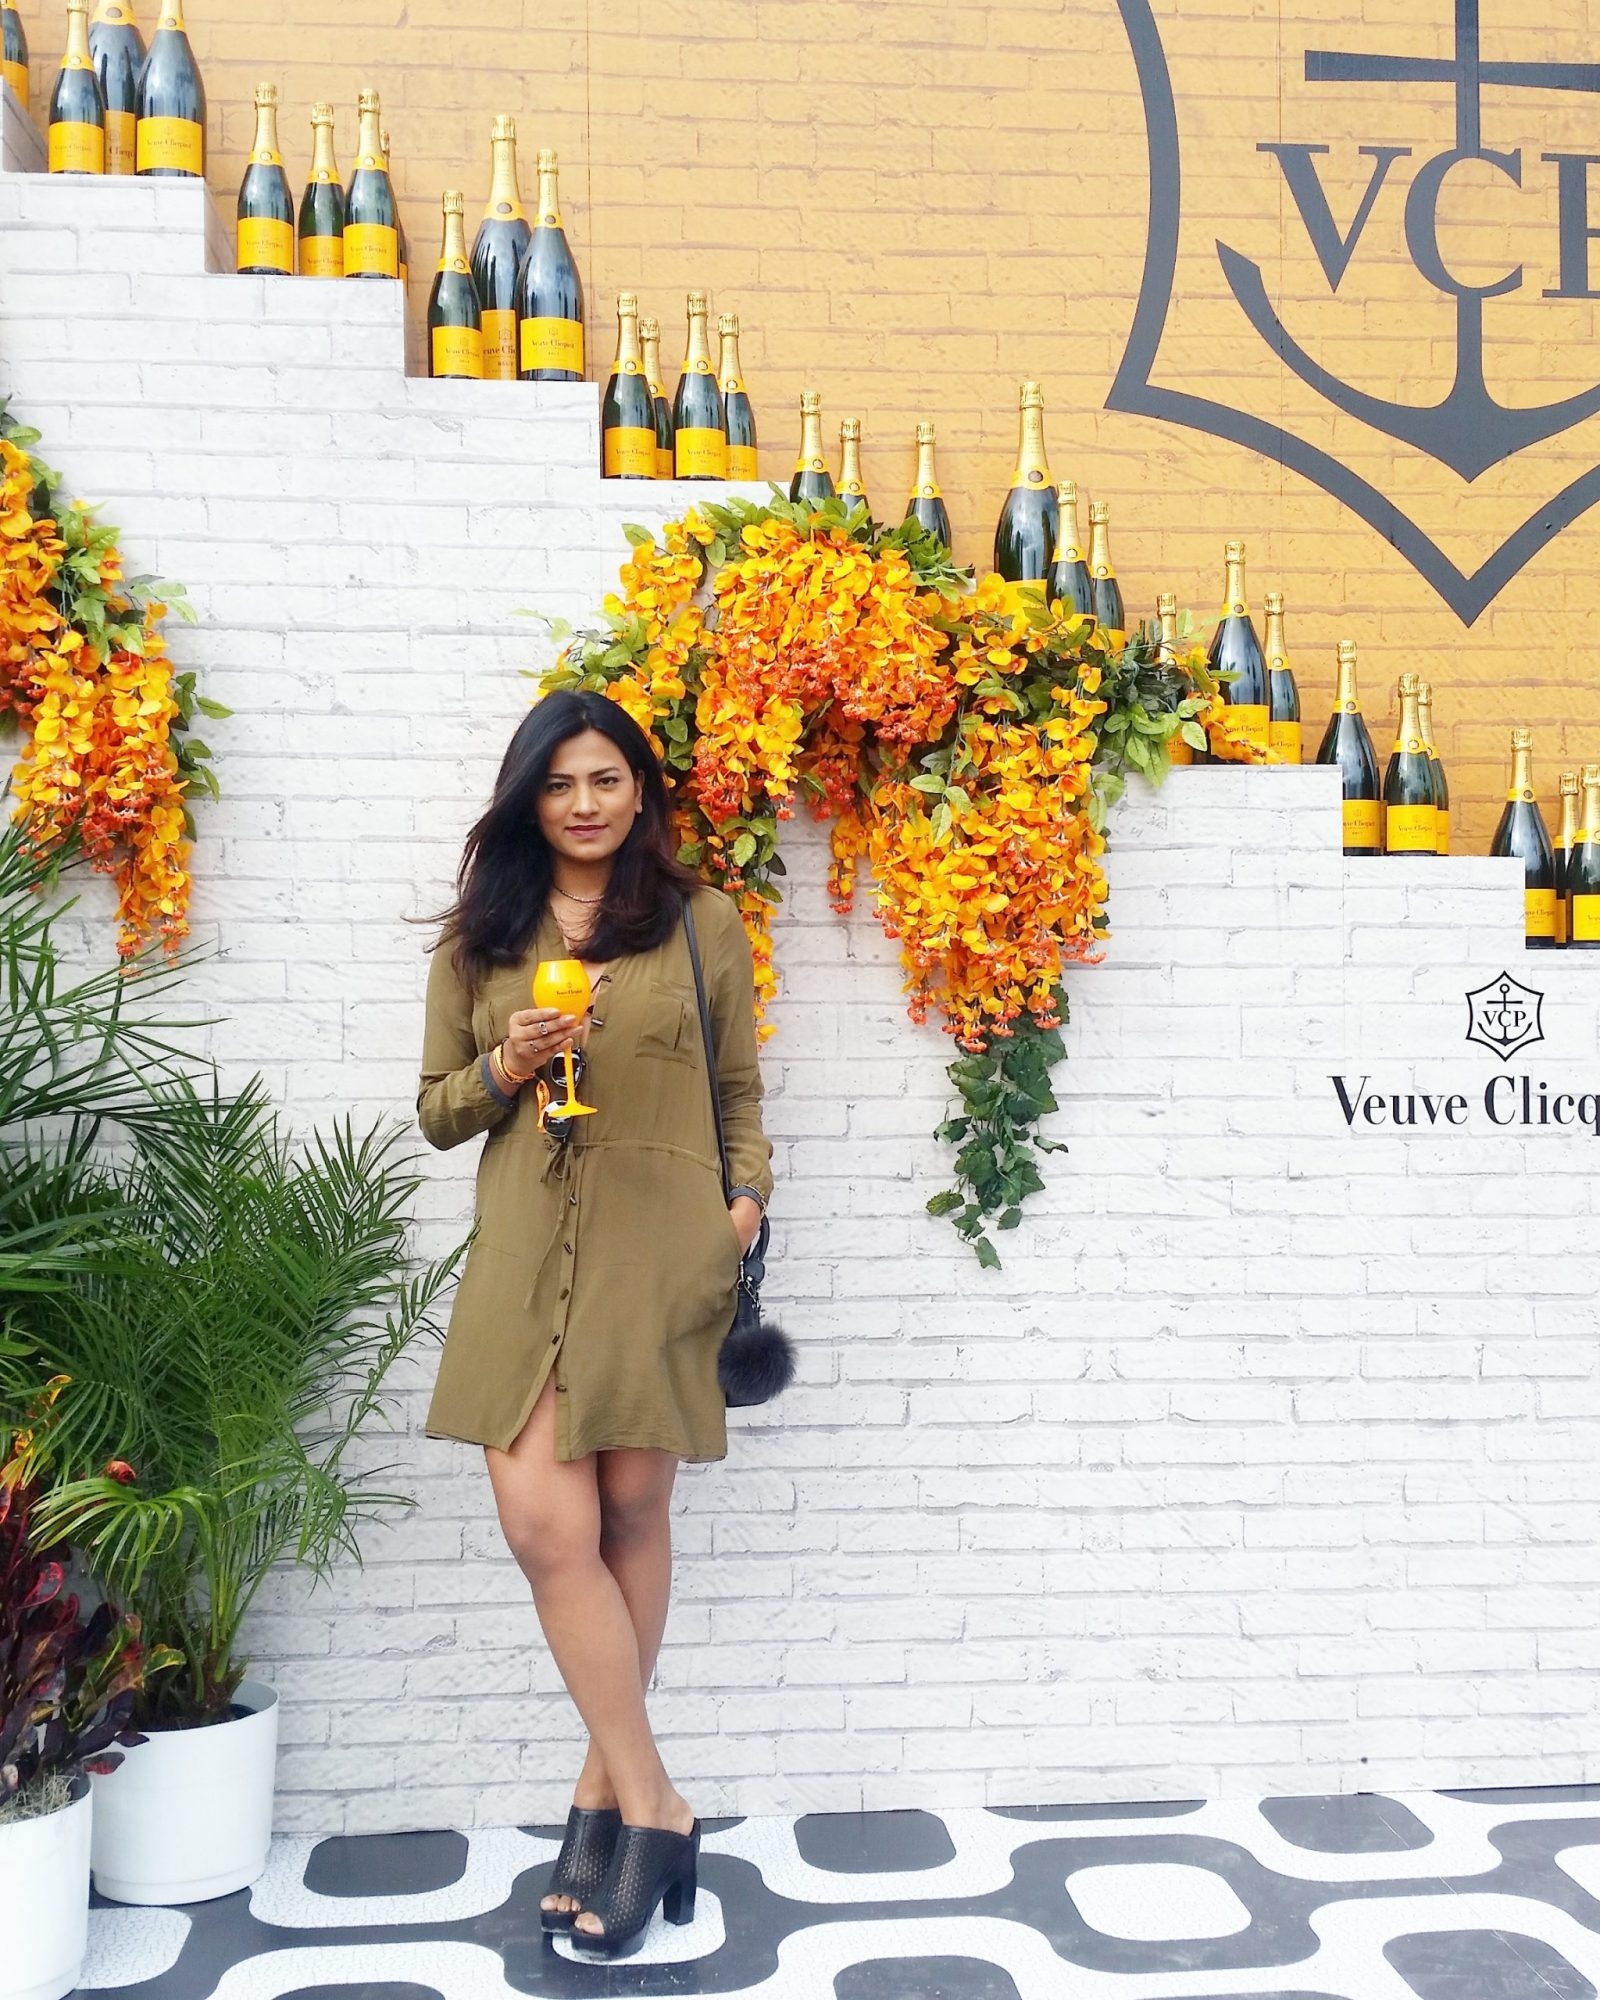 #VCCarnaval Veuve Clicquot Style Influencer